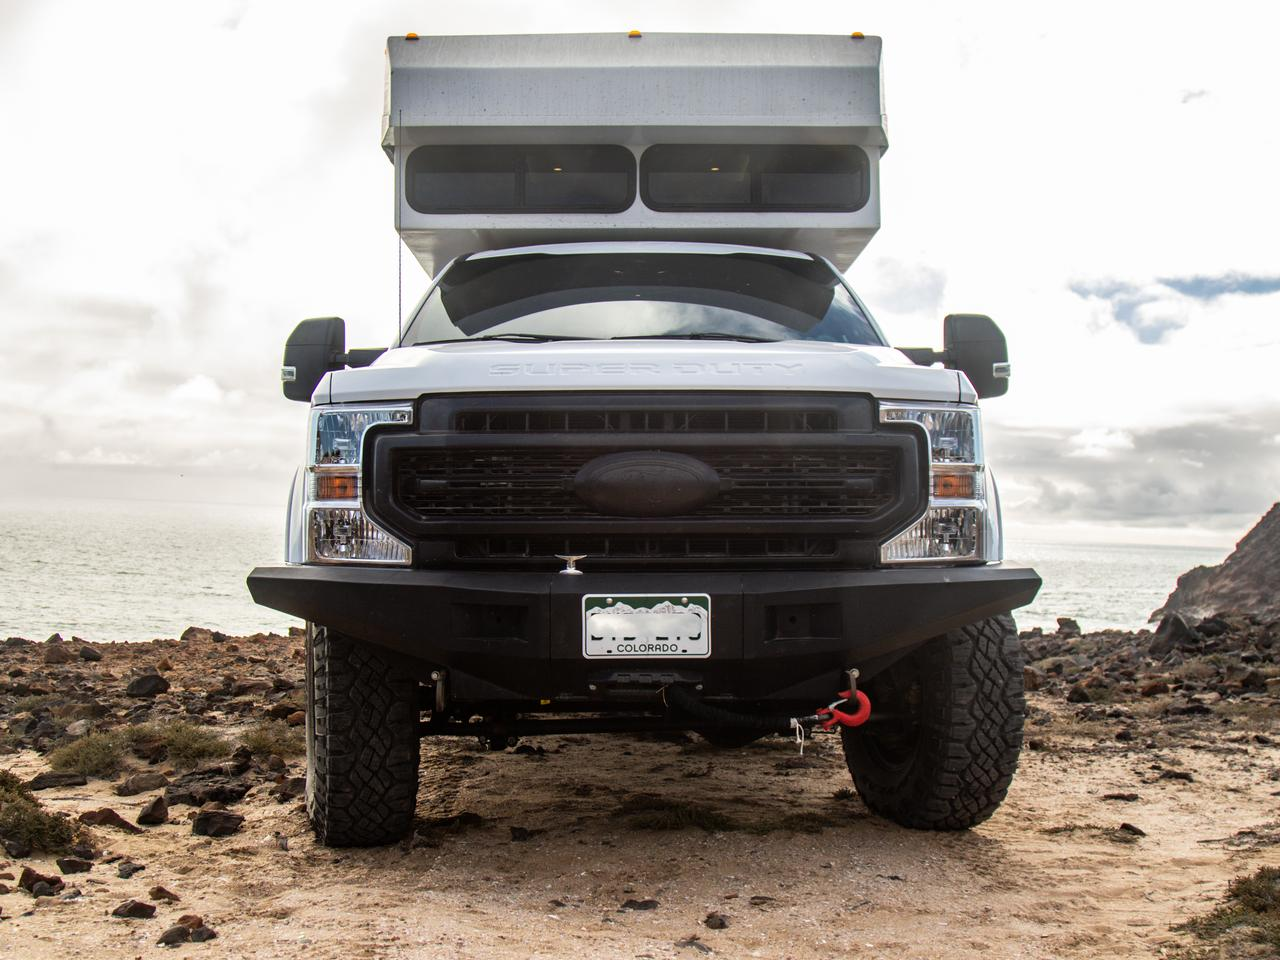 The front bumper also brings a Warn winch